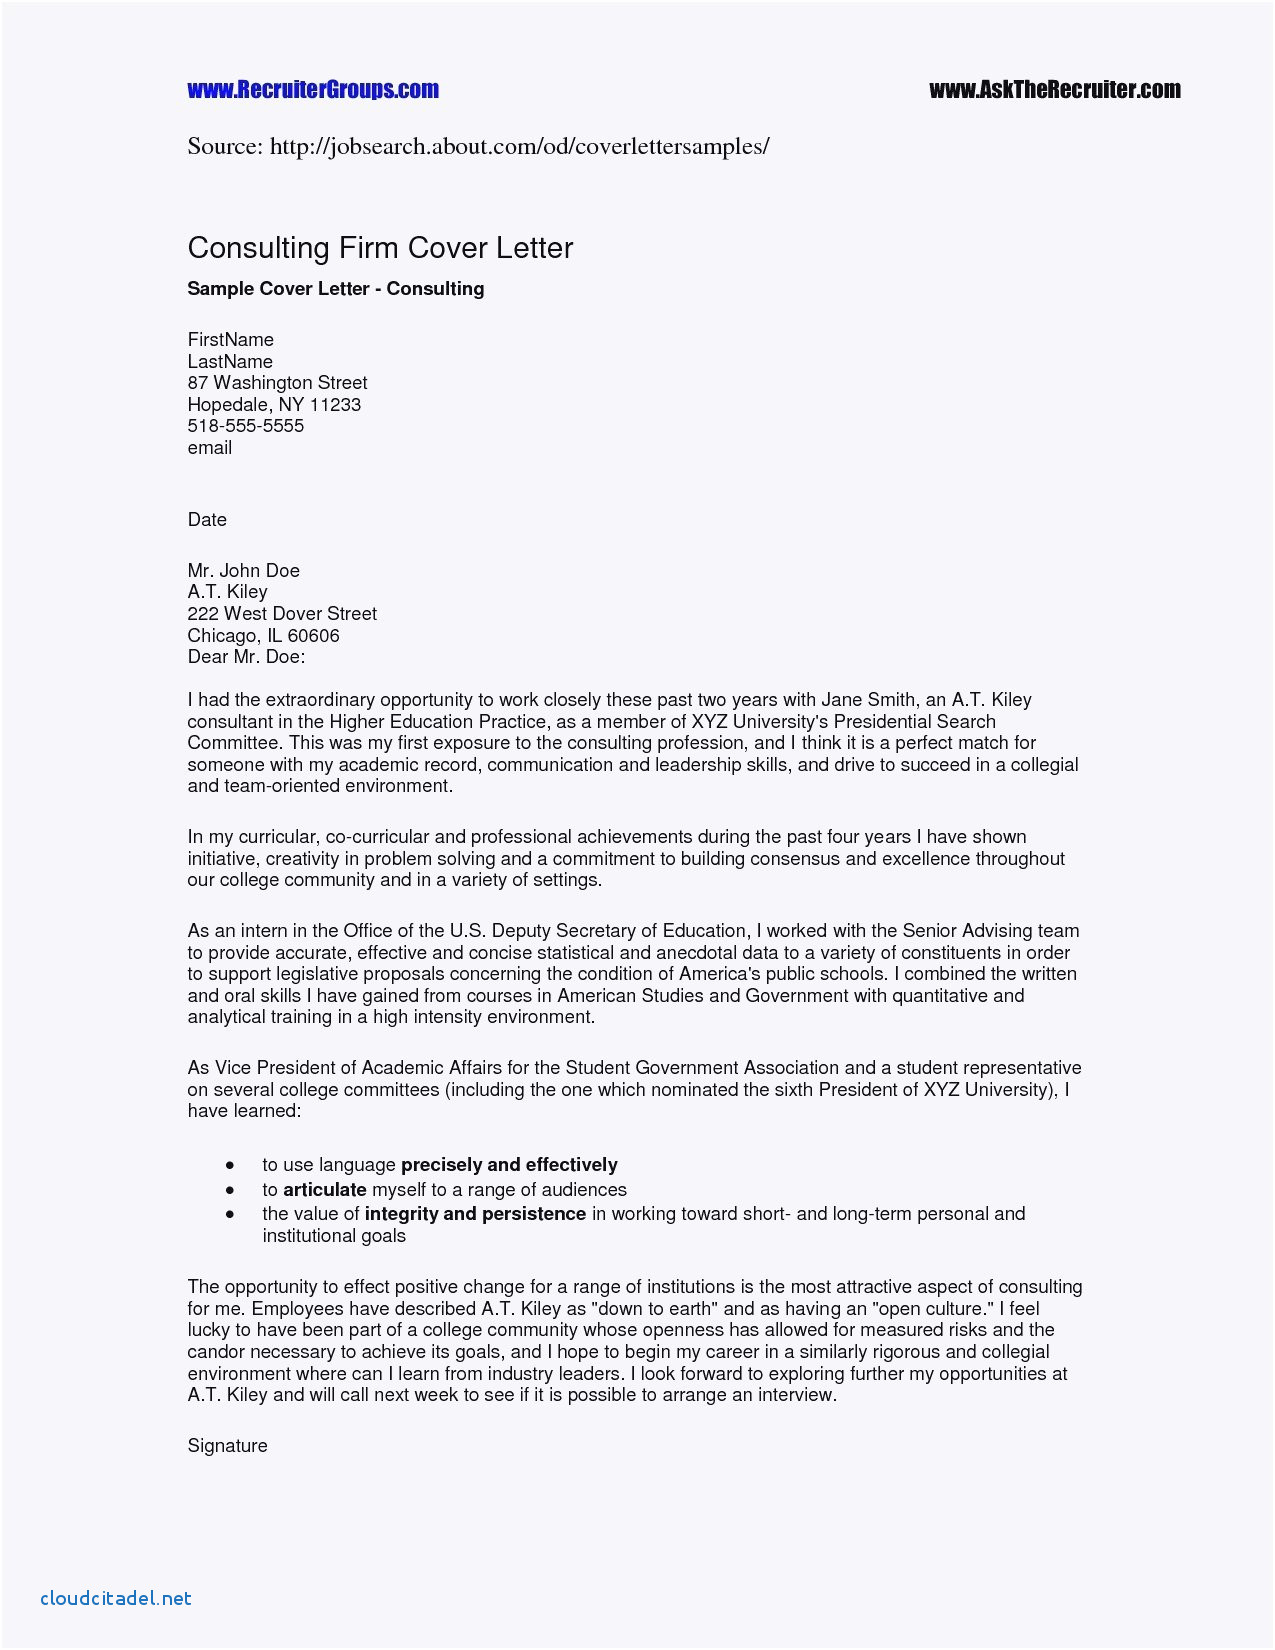 Cover Letter Template Doc - Elegant Letter Sample format Doc